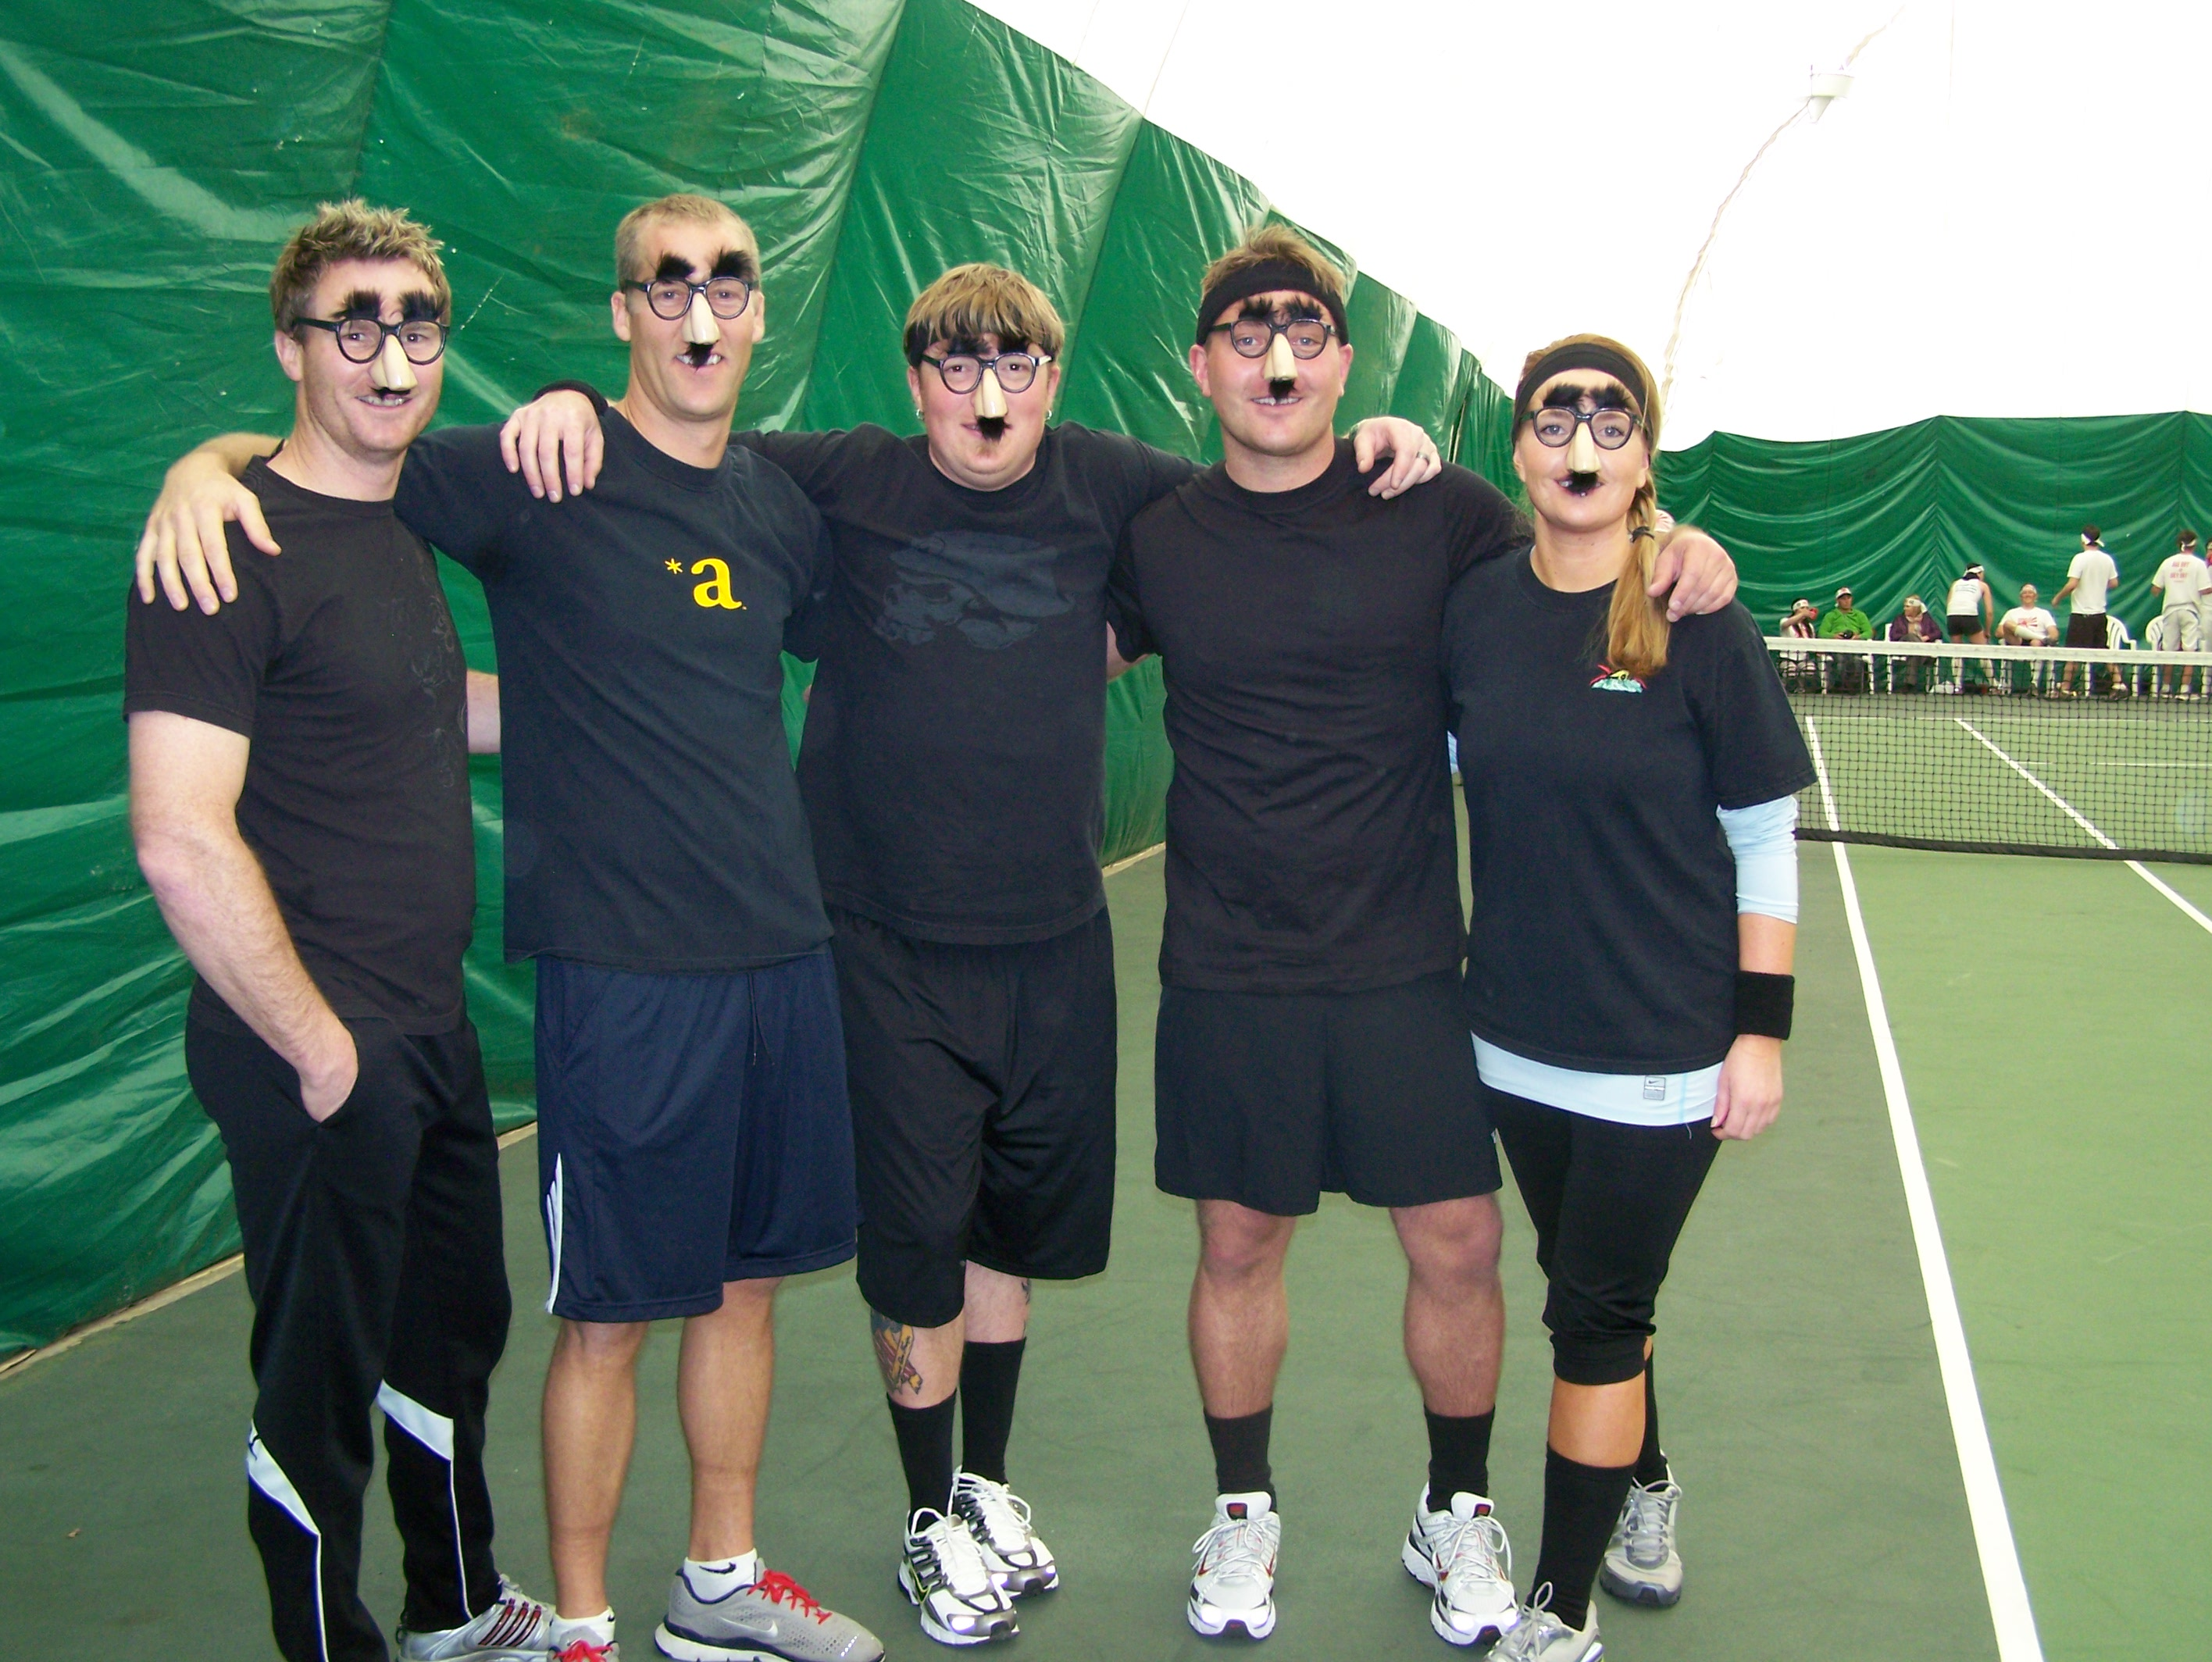 qittle-dodgeball-team